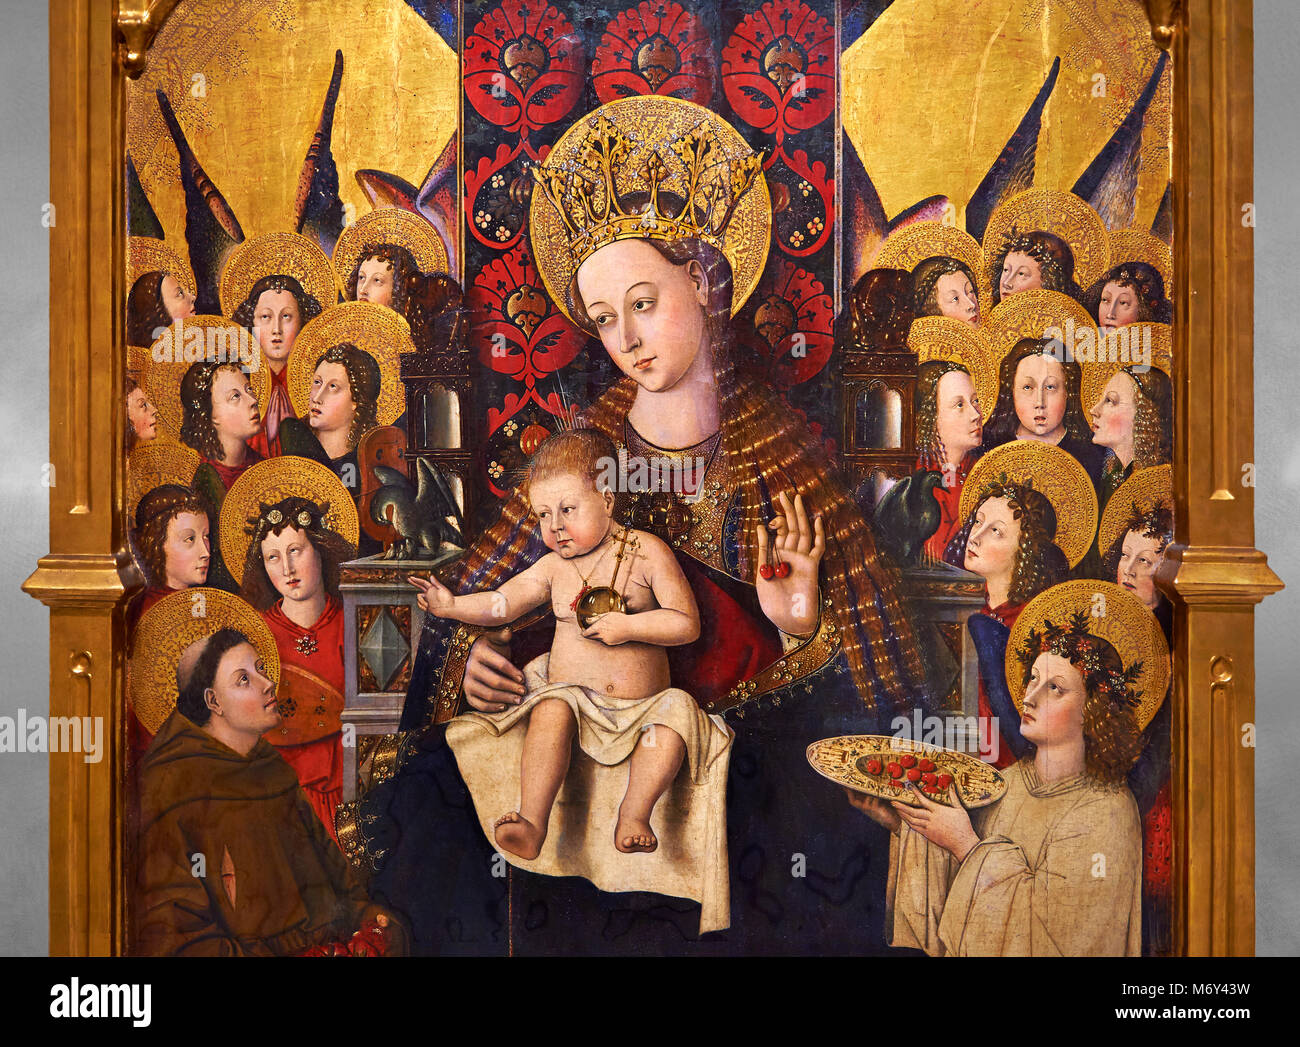 Virgin Mary; Mother of God; The Virgin; Mare de deu; Gothic altarpiece of Madonna and Child by Joan Reixach of Barcelona, - Stock Image